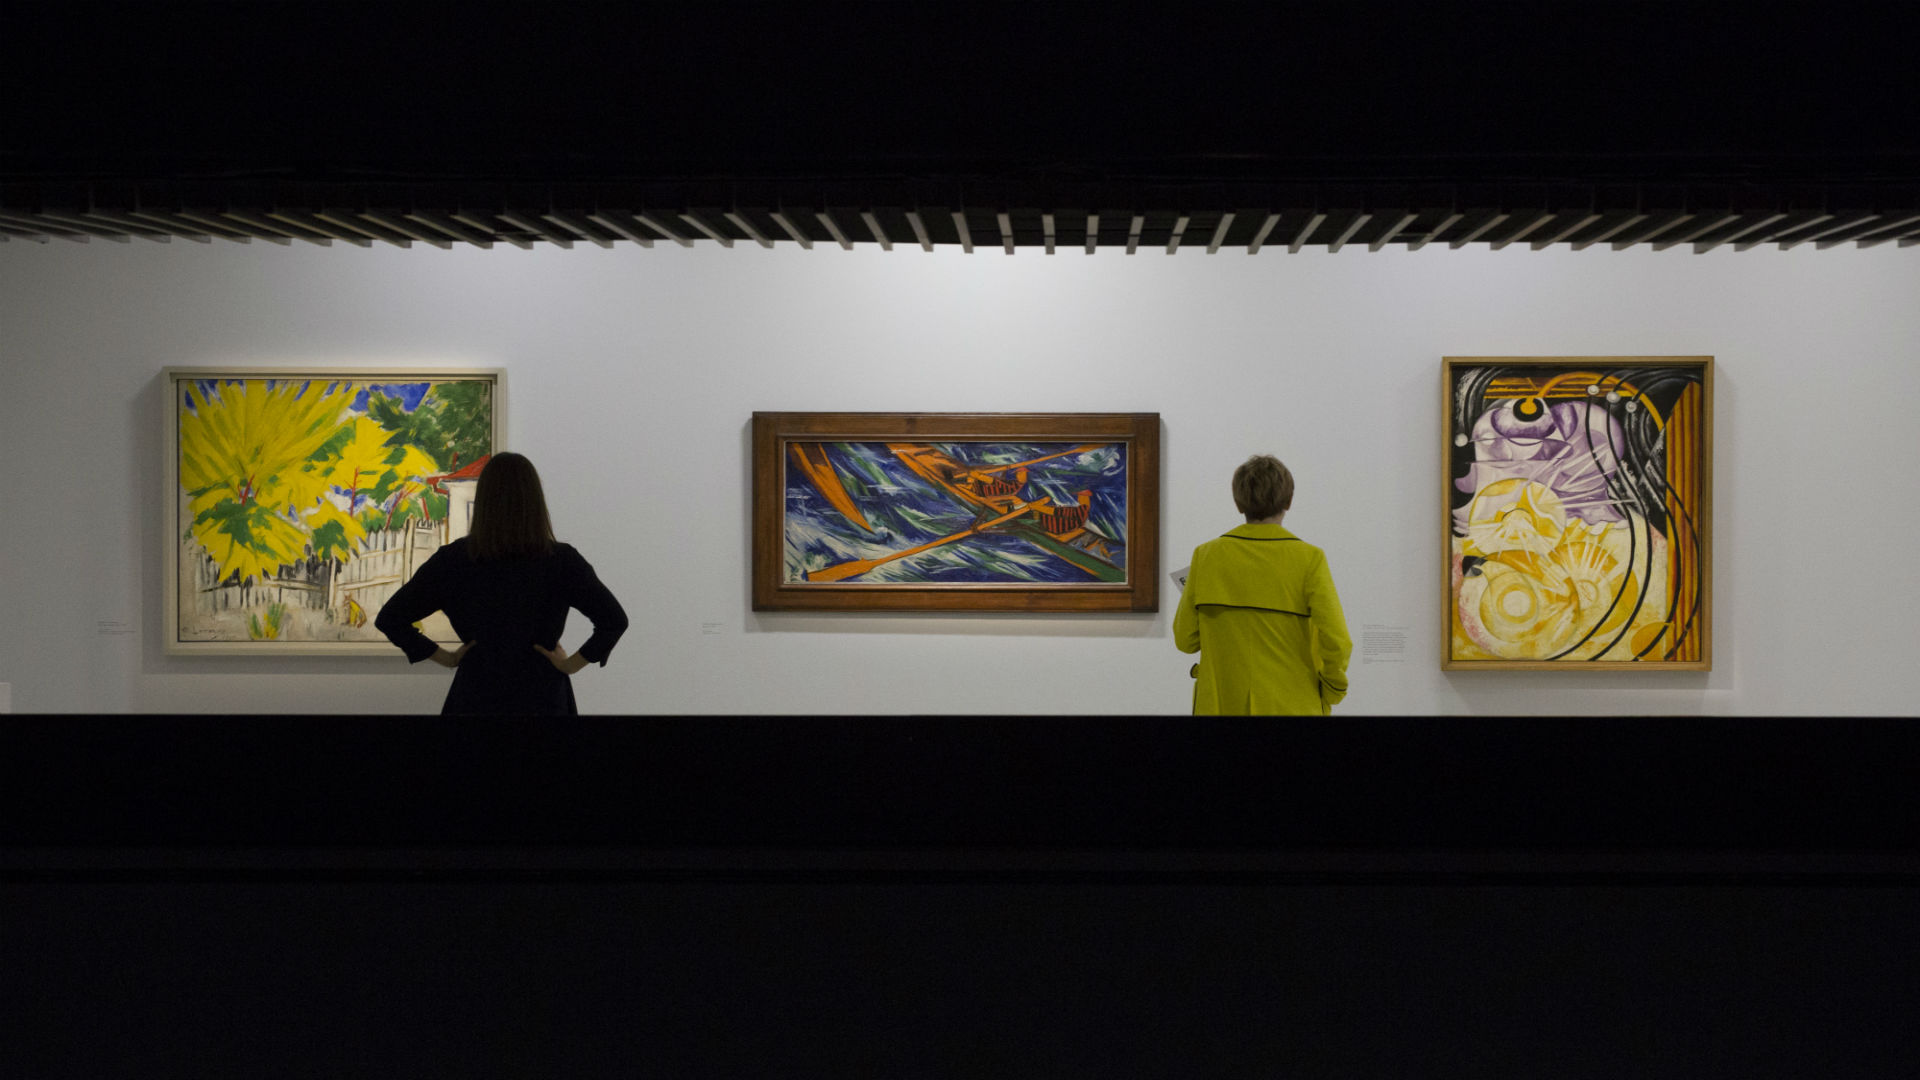 Art on display at Modern Couples exhibition at the Barbican Art Gallery